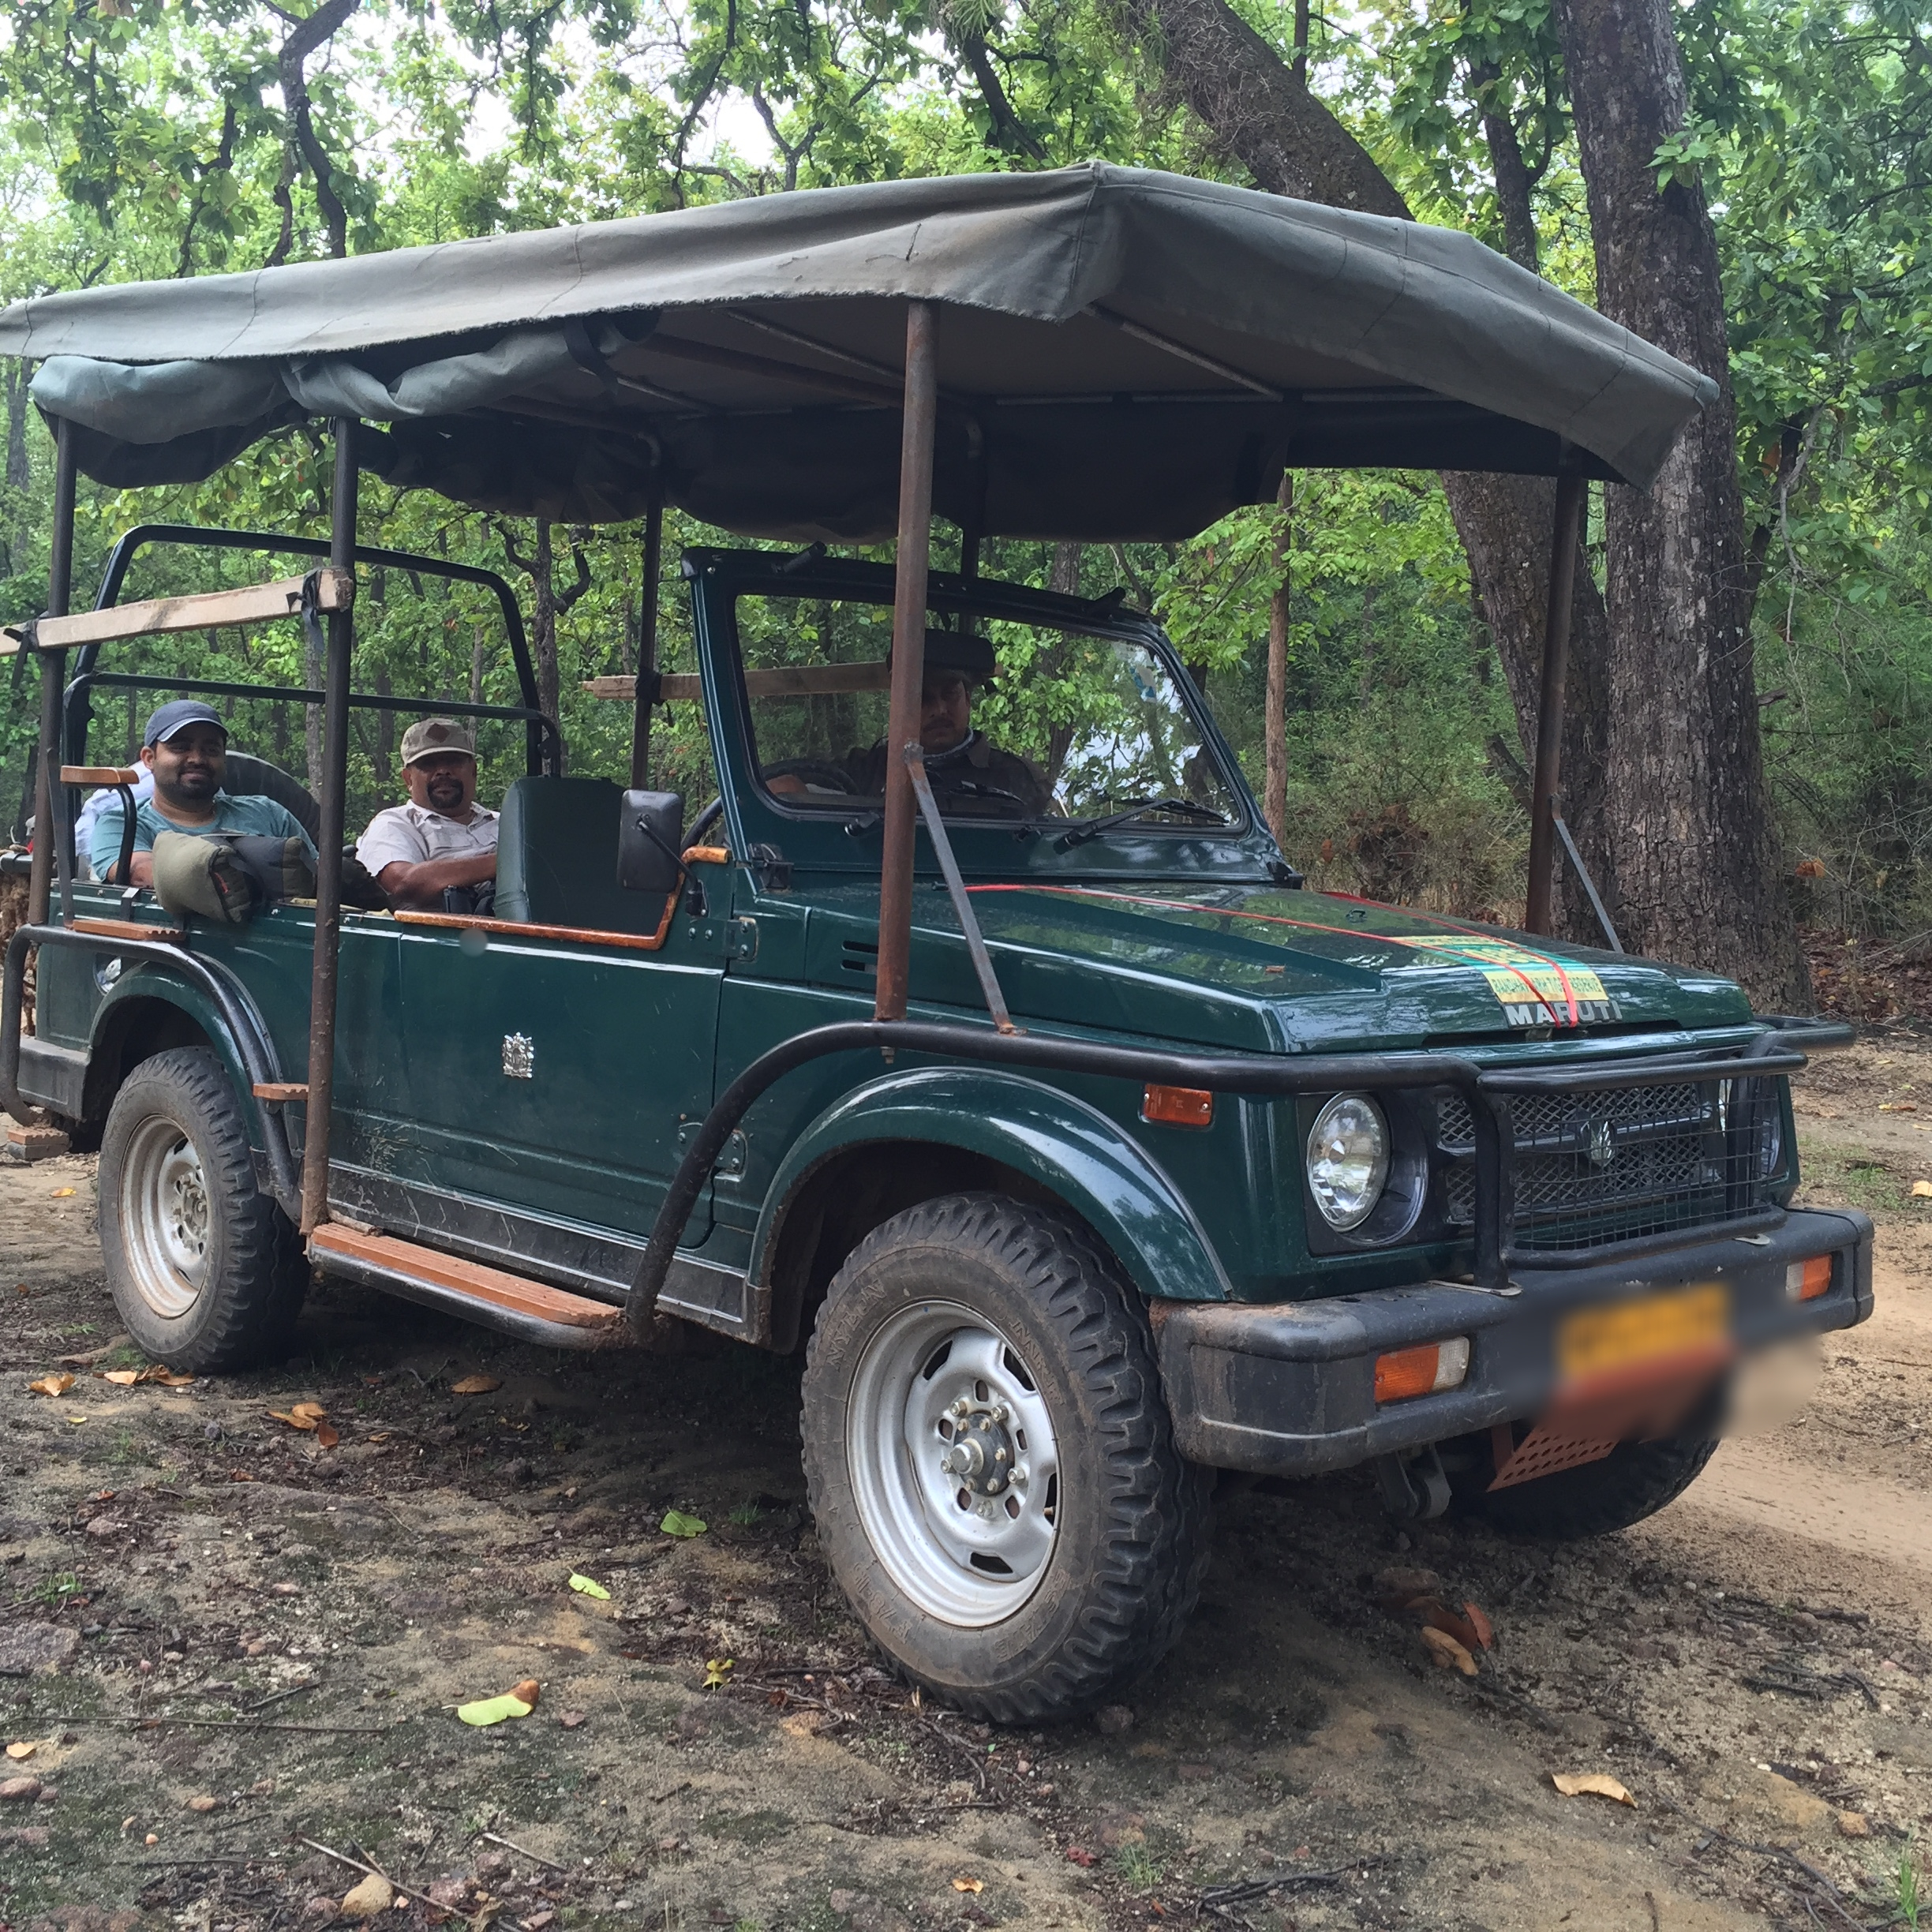 The customised jeep with roofing